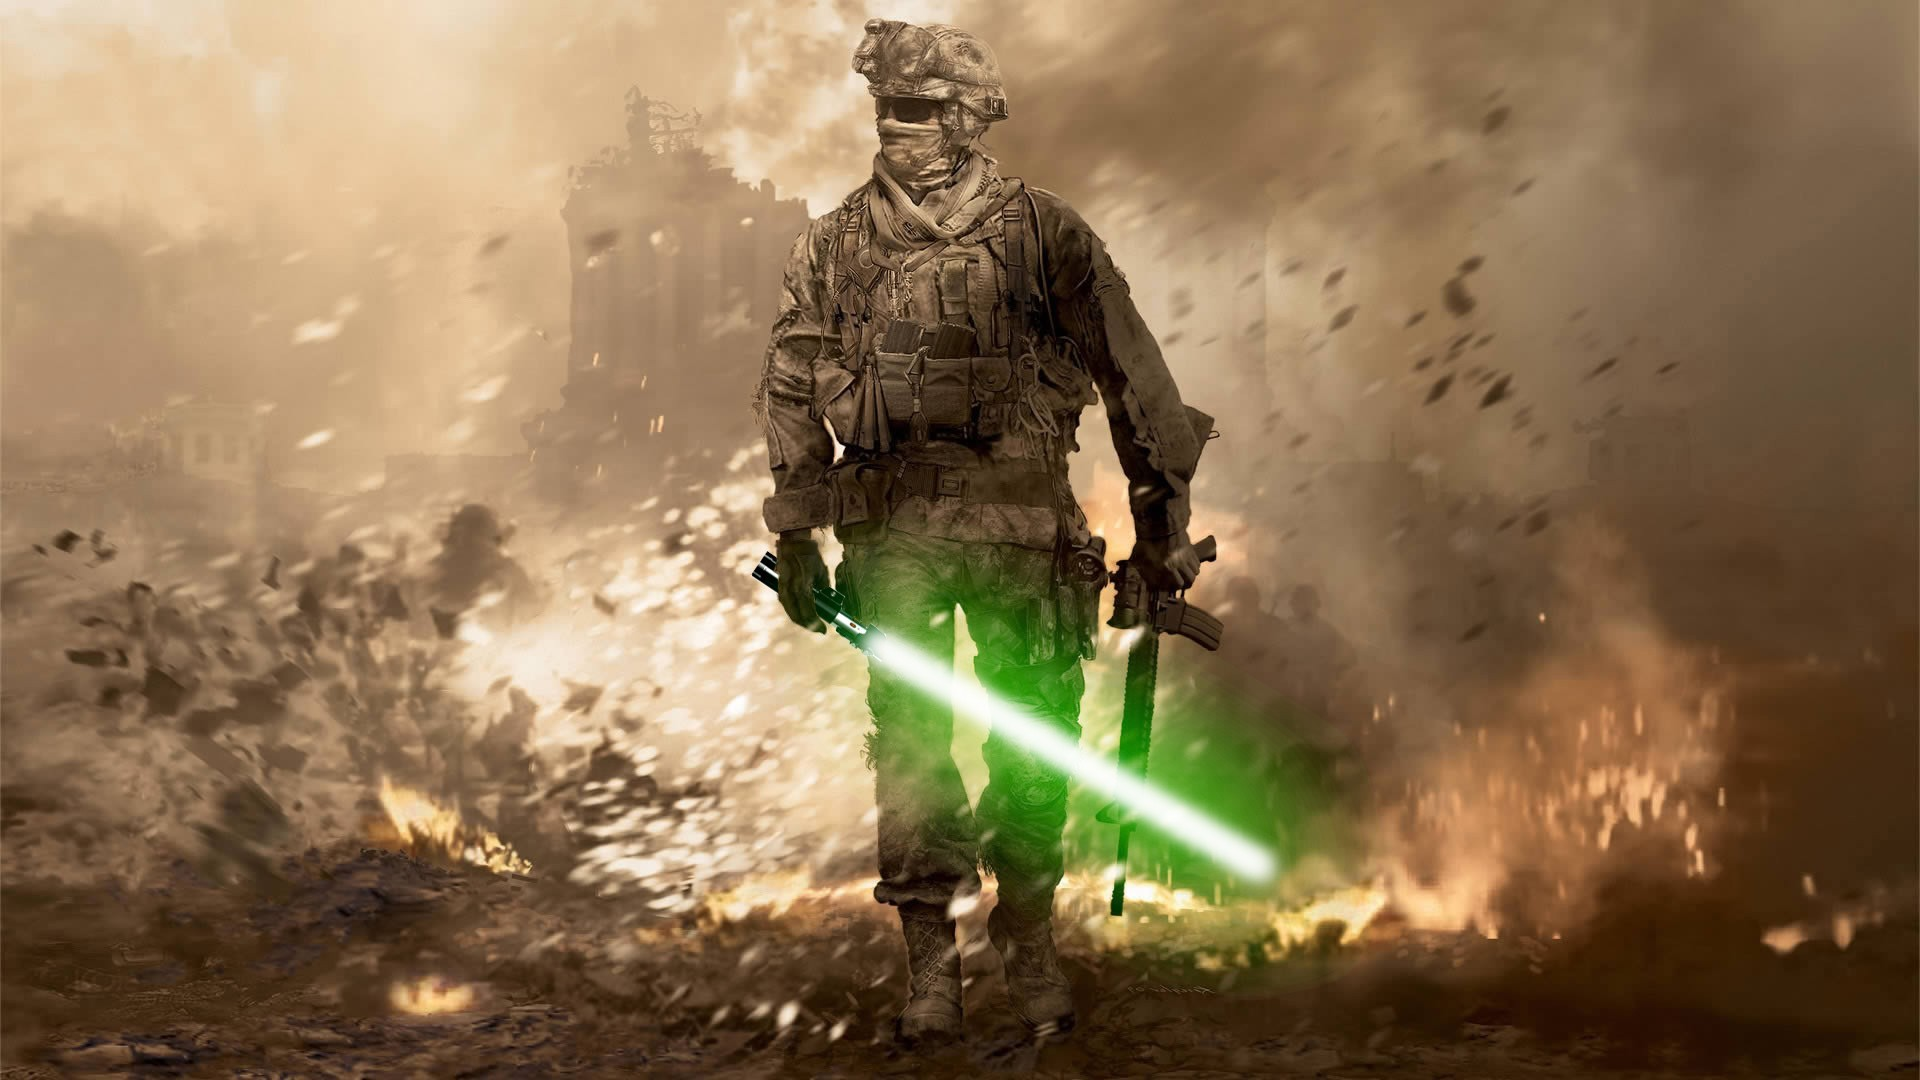 Free Download Call Of Duty Star Wars Crossover Funny Hd Wallpaper